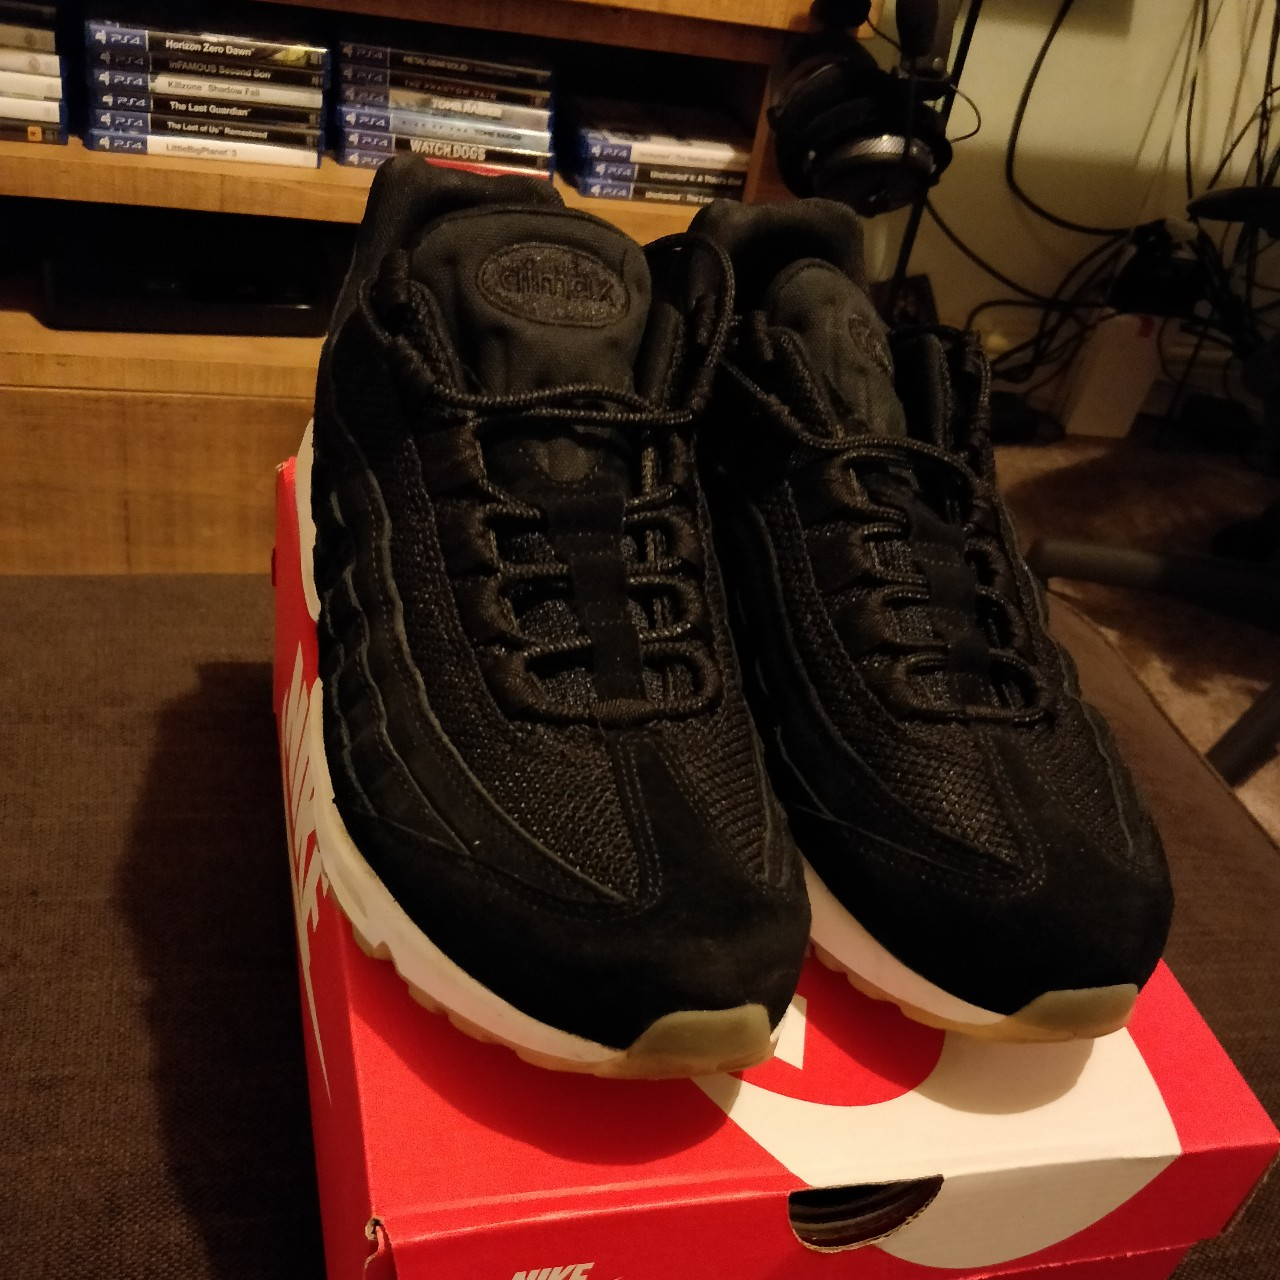 usa cheap sale amazing selection for whole family Nike Air Max 95 Premium Black Muslin UK10 9/10 worn... - Depop